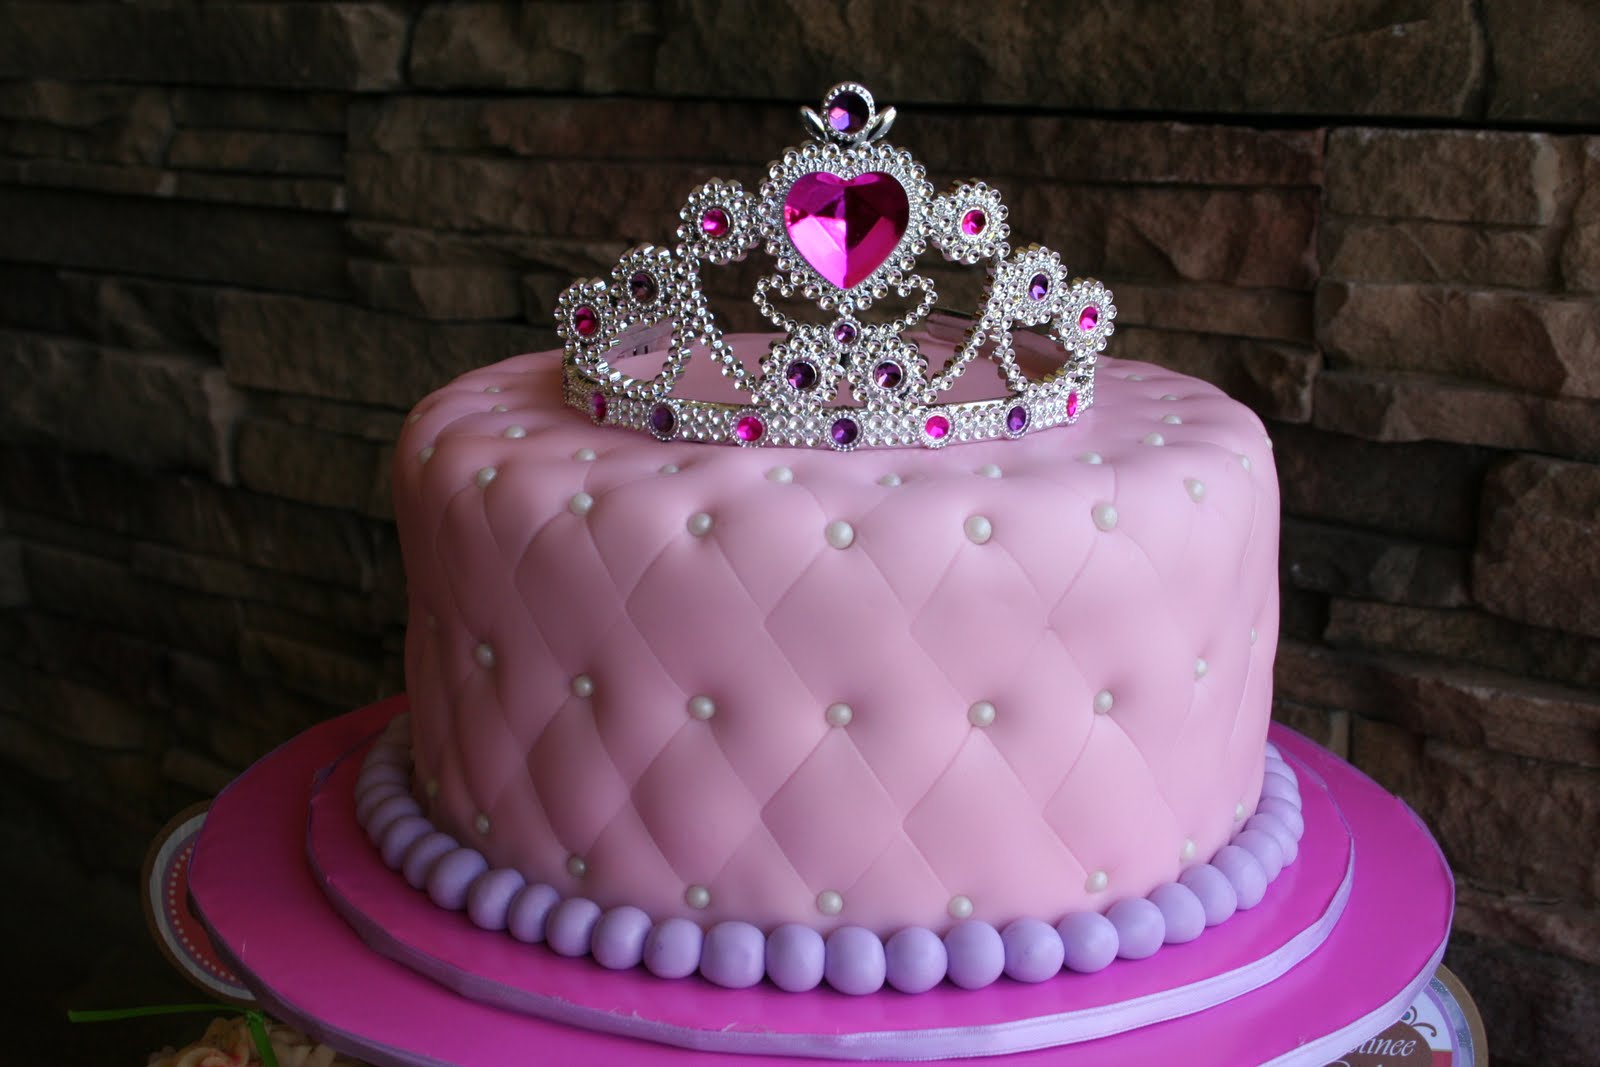 Princess Cake Design : cakes by narleen kristel: a princess  1st birthday...